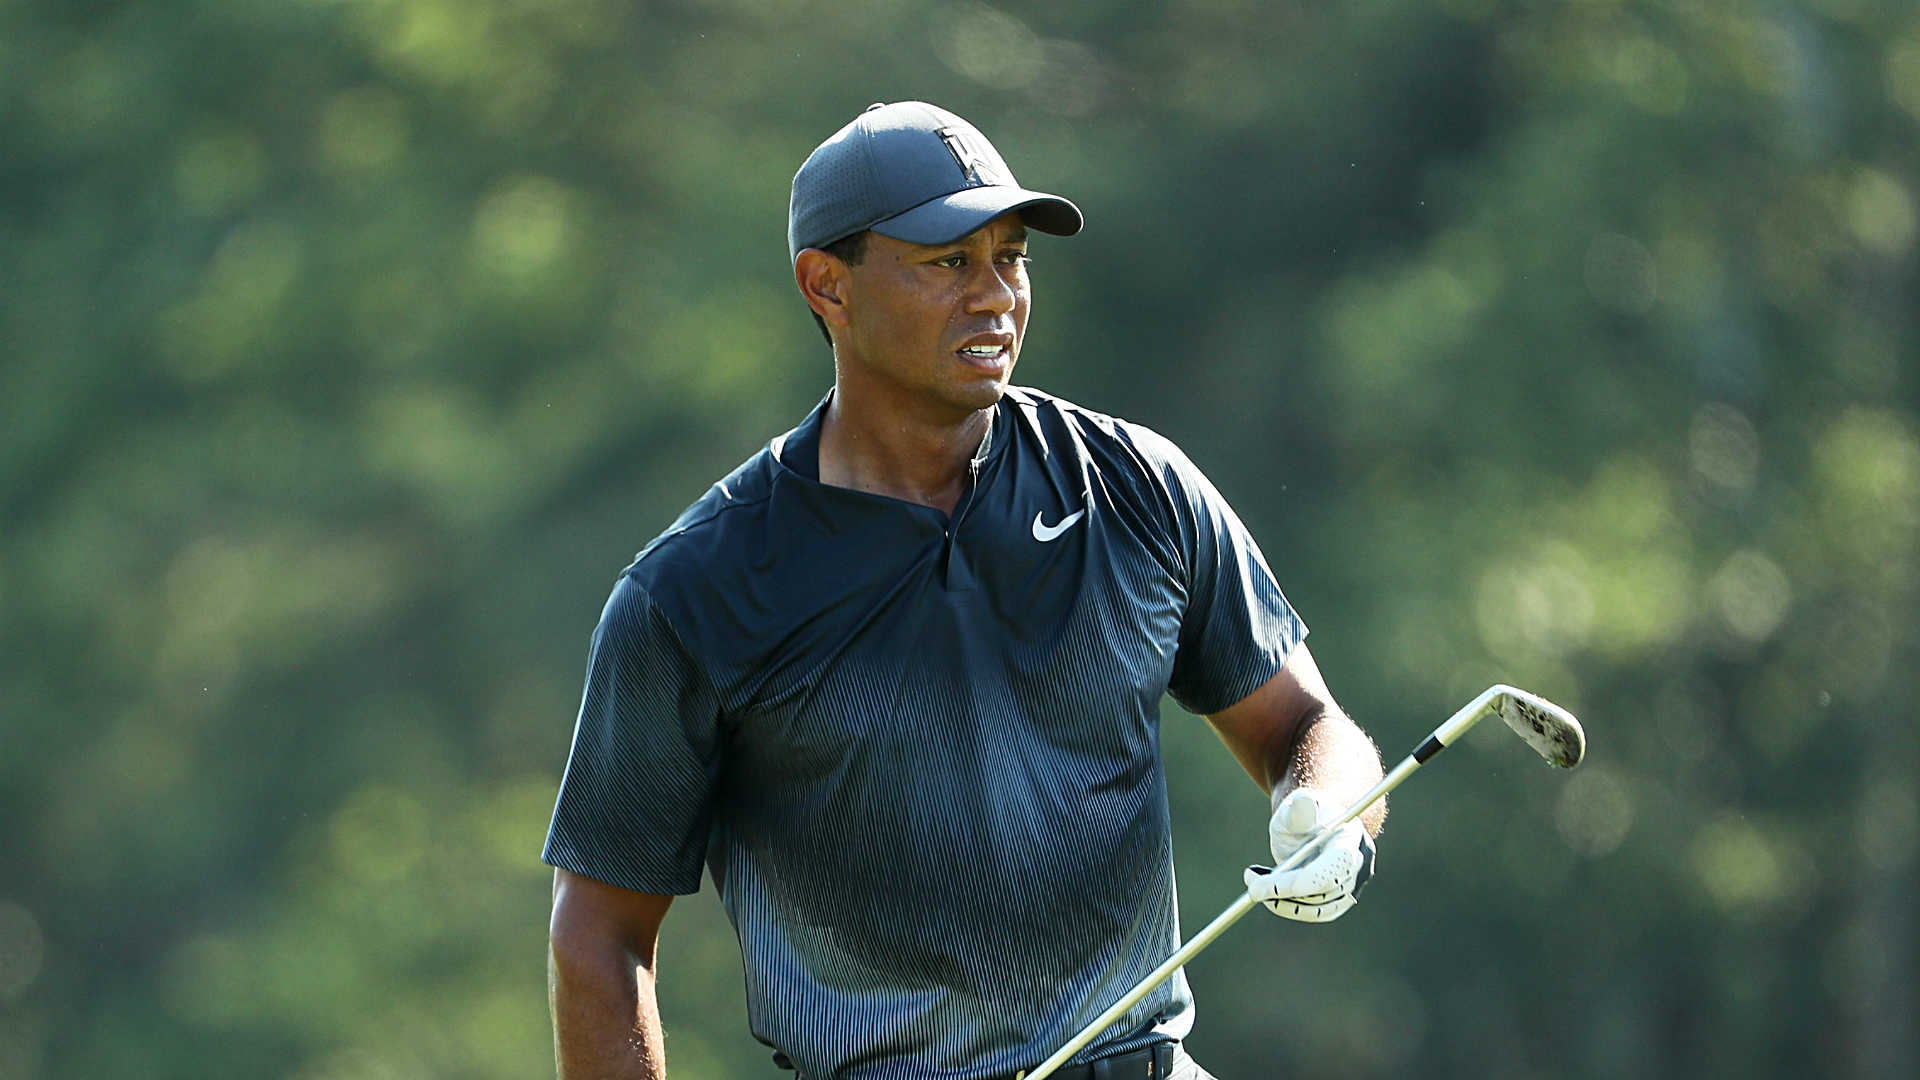 tiger woods score  round 2 recap  highlights from the